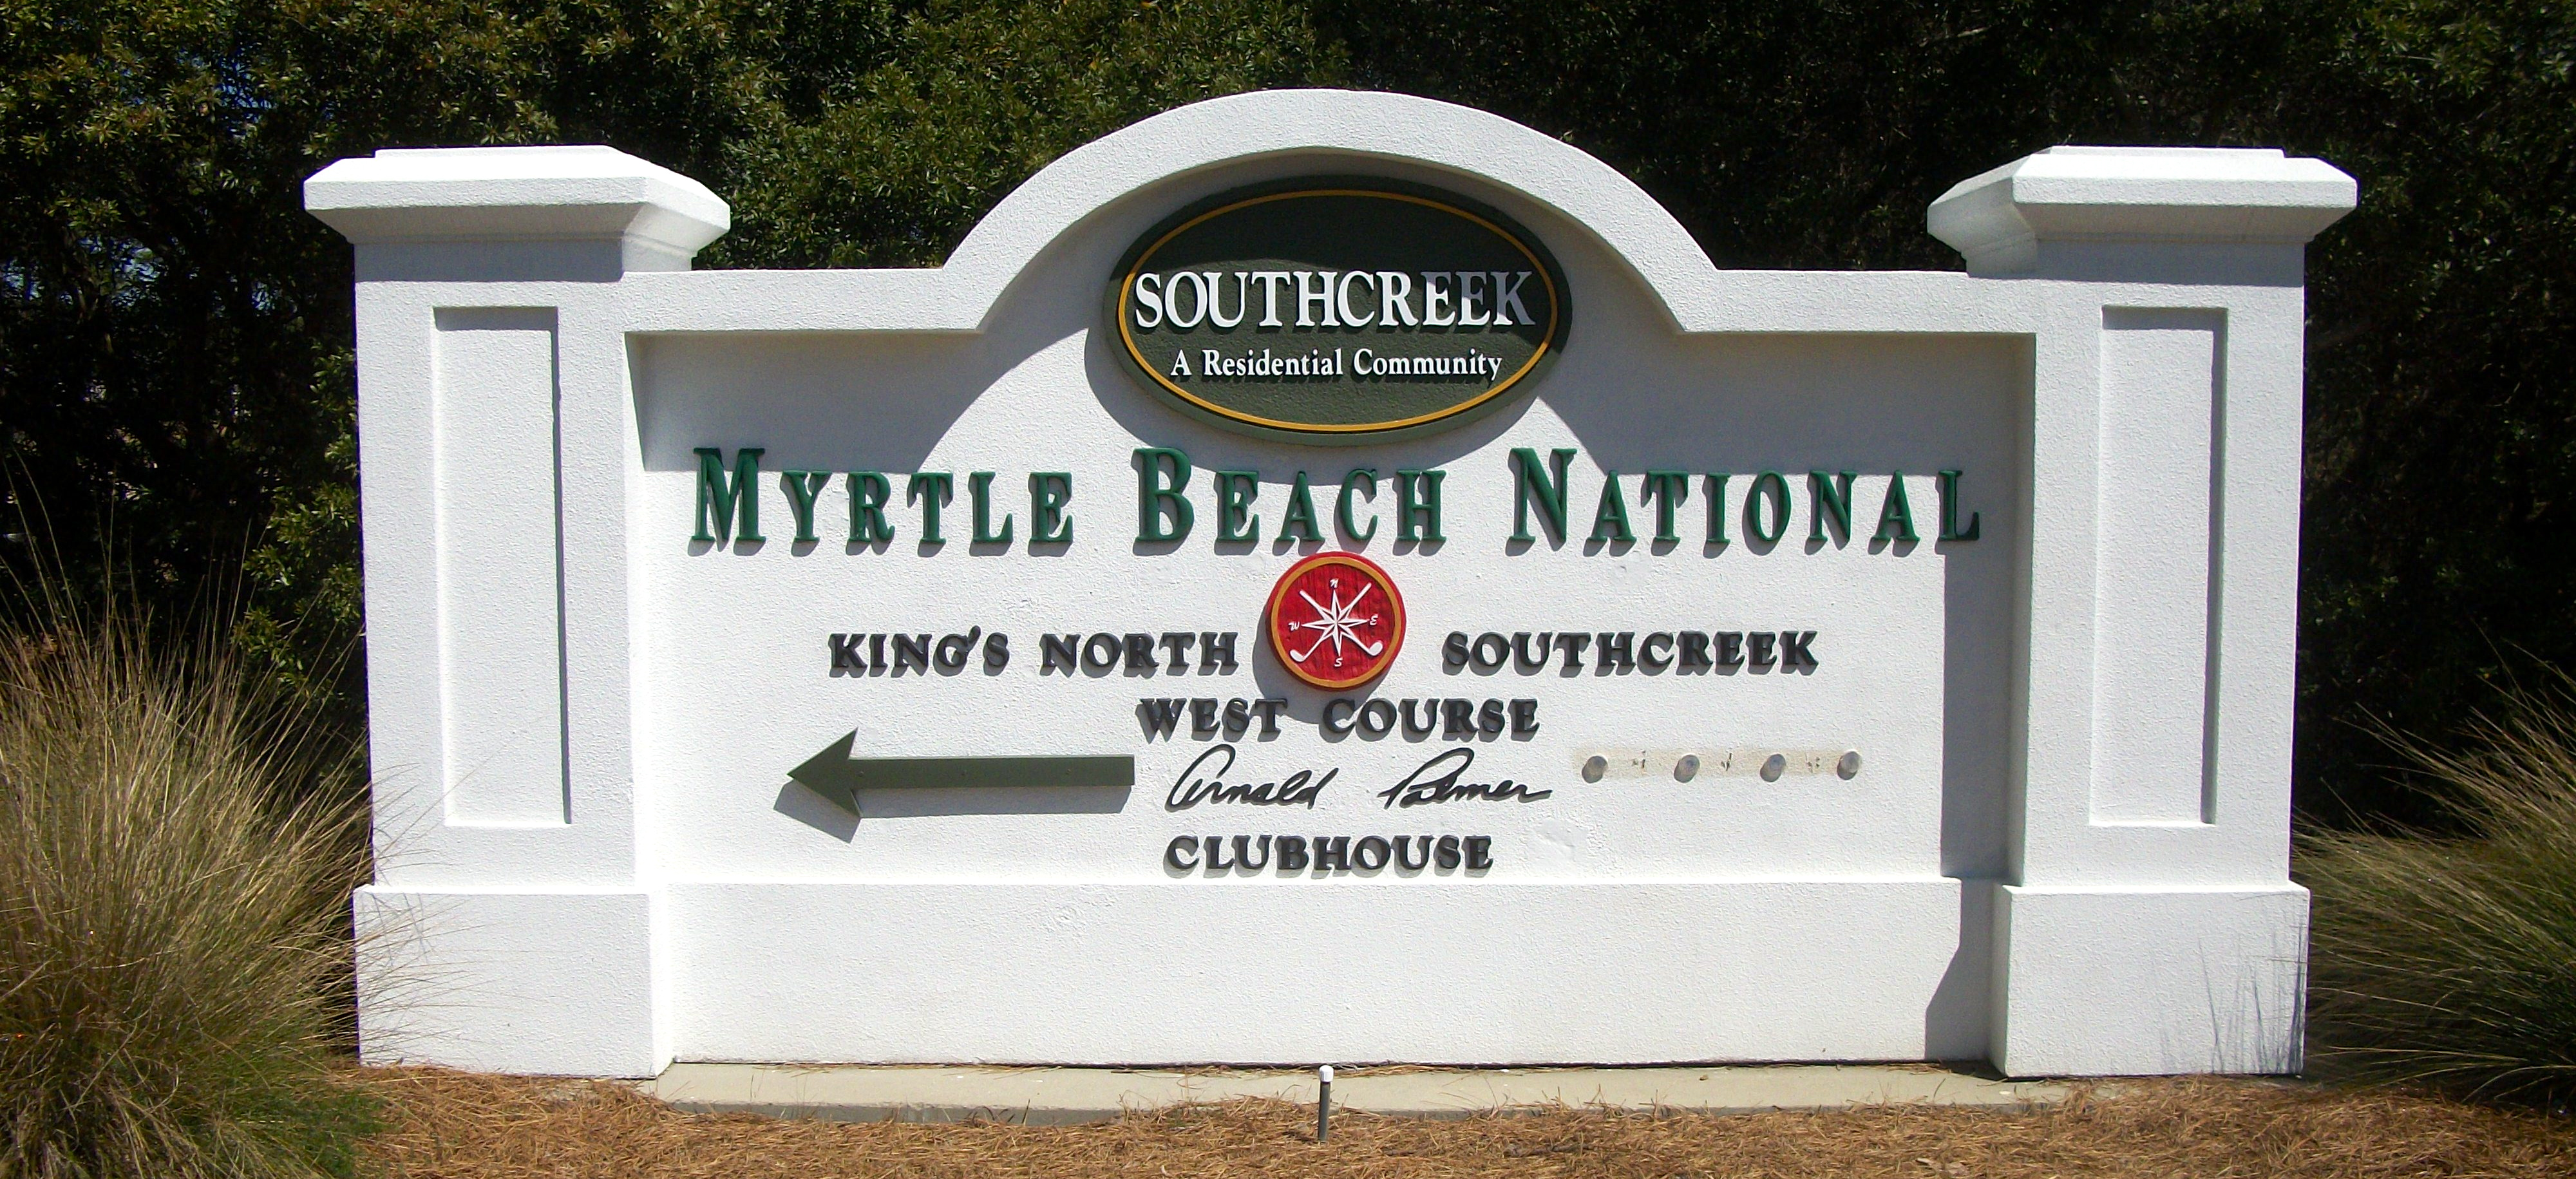 Southcreek Myrtle Beach National